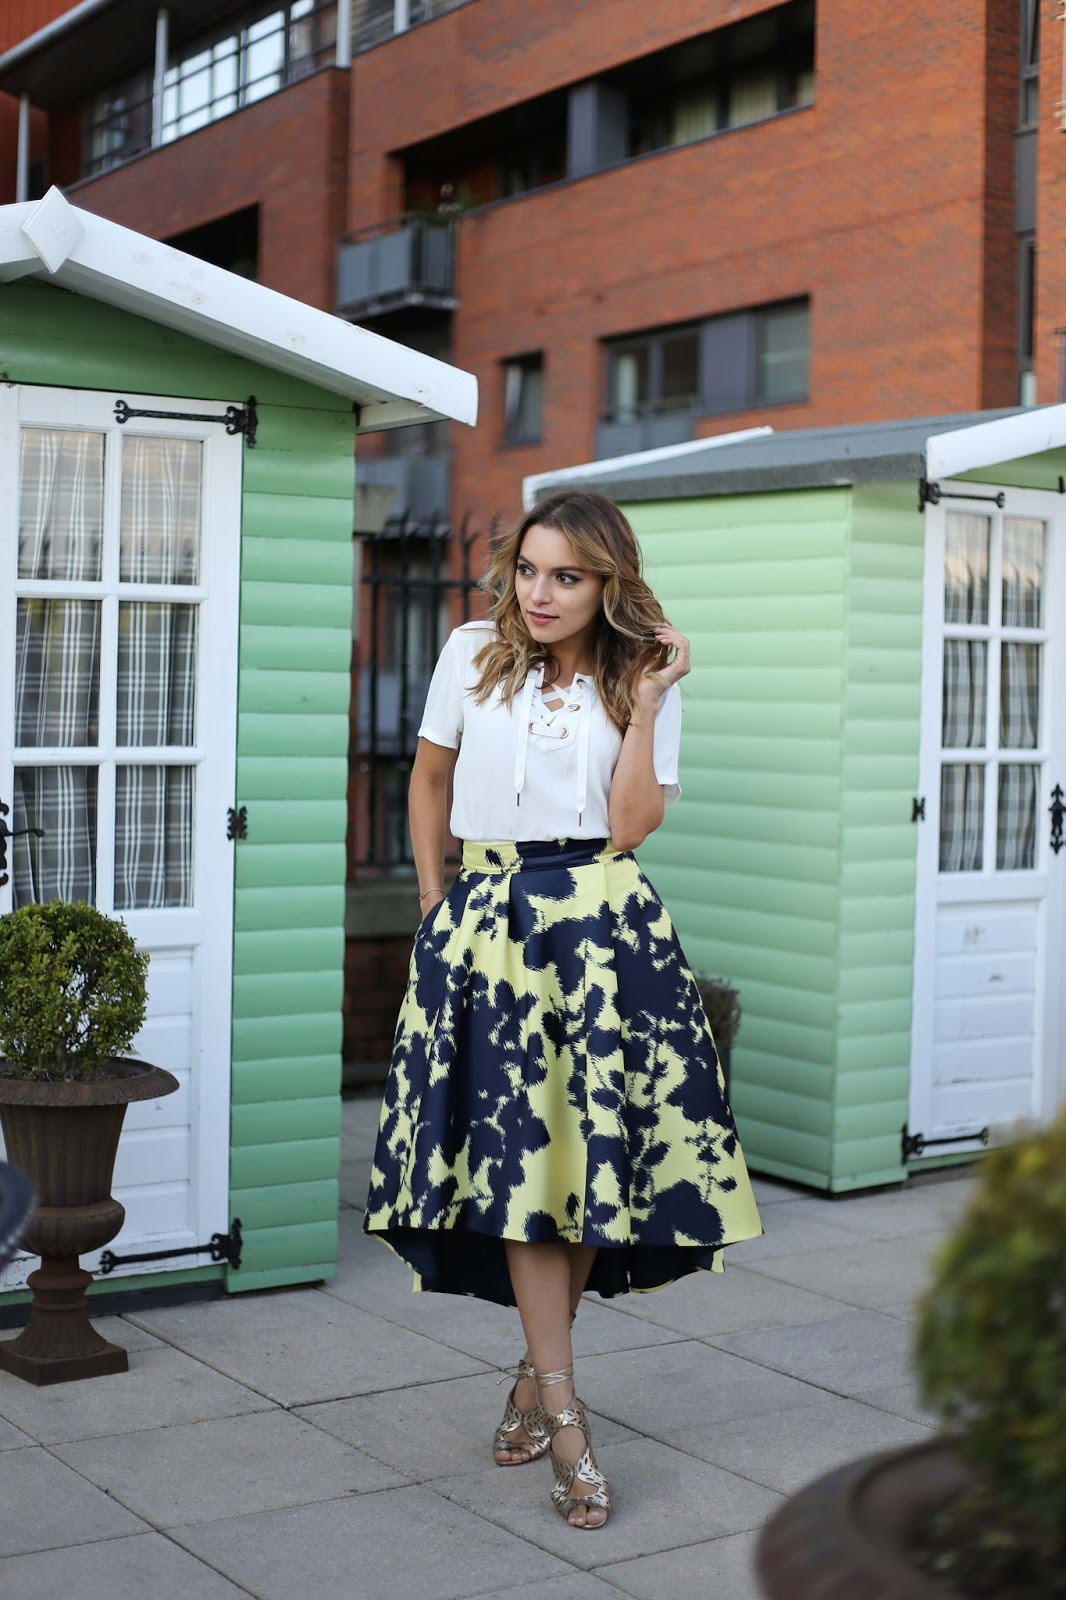 f161e2d7b3 Whitney's Wonderland UK Top Fashion Blog wears Gestuz top, Coast high low  skirt and Kurt